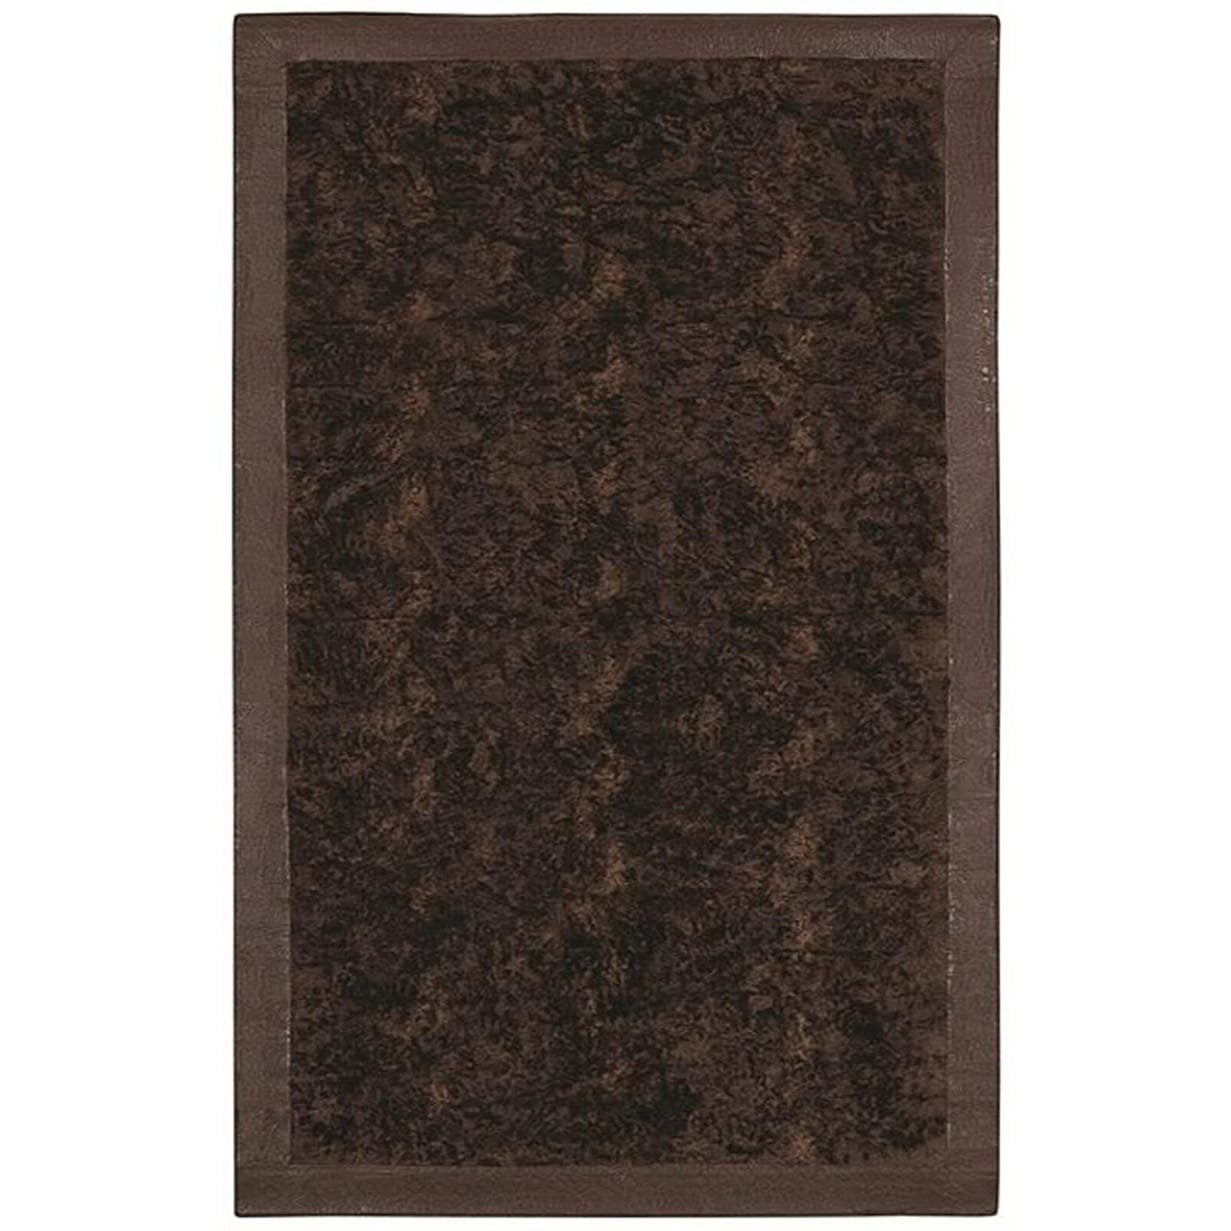 Sai Resouces LLC Brown Acrylic Fur Animal Rug (5'6 x 8'6) 5'6 x 8'6 6' x 9'